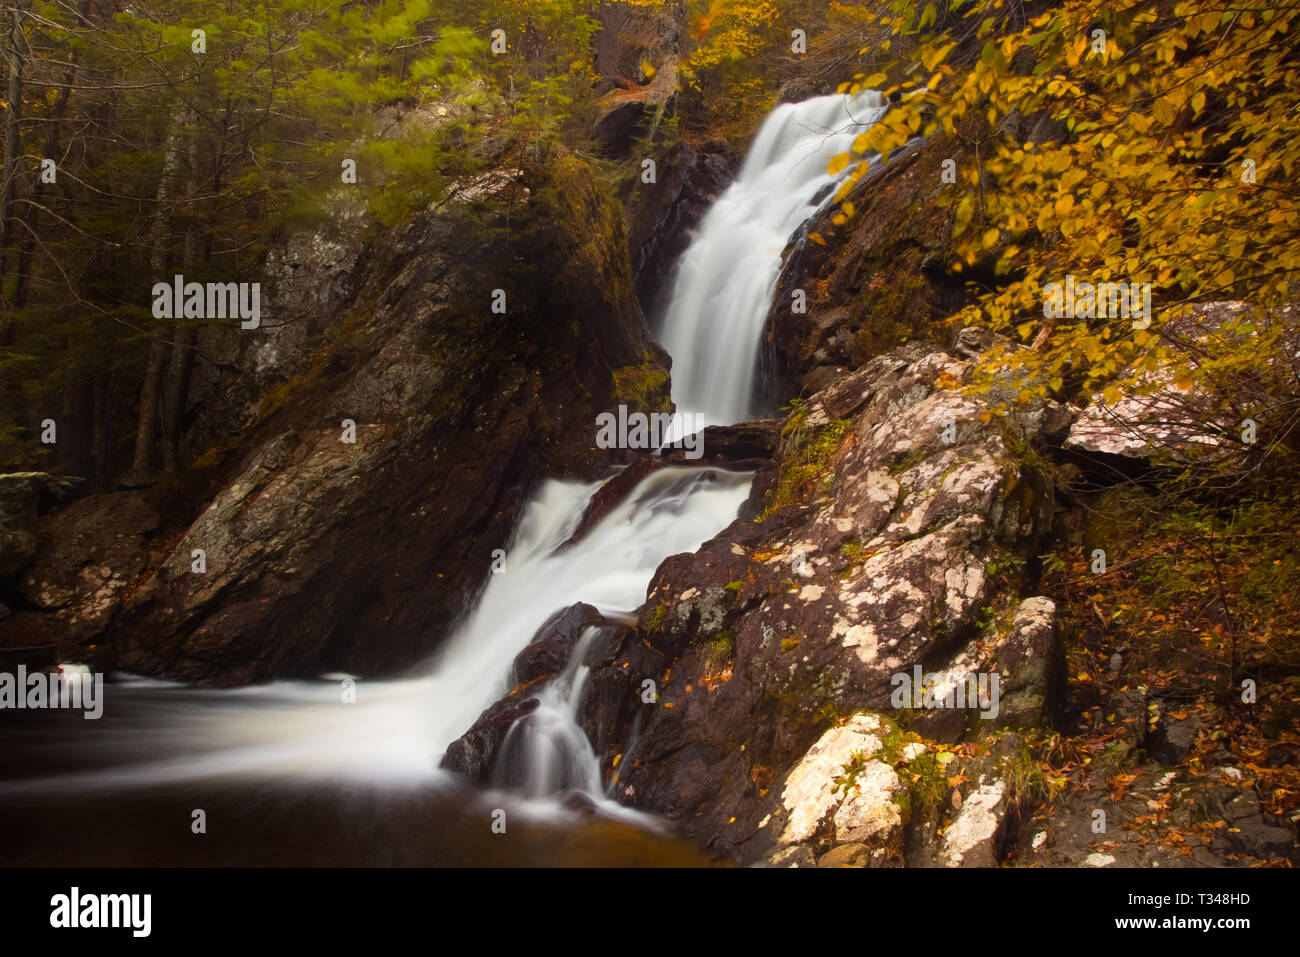 Waterfall in Summer - Stock Image